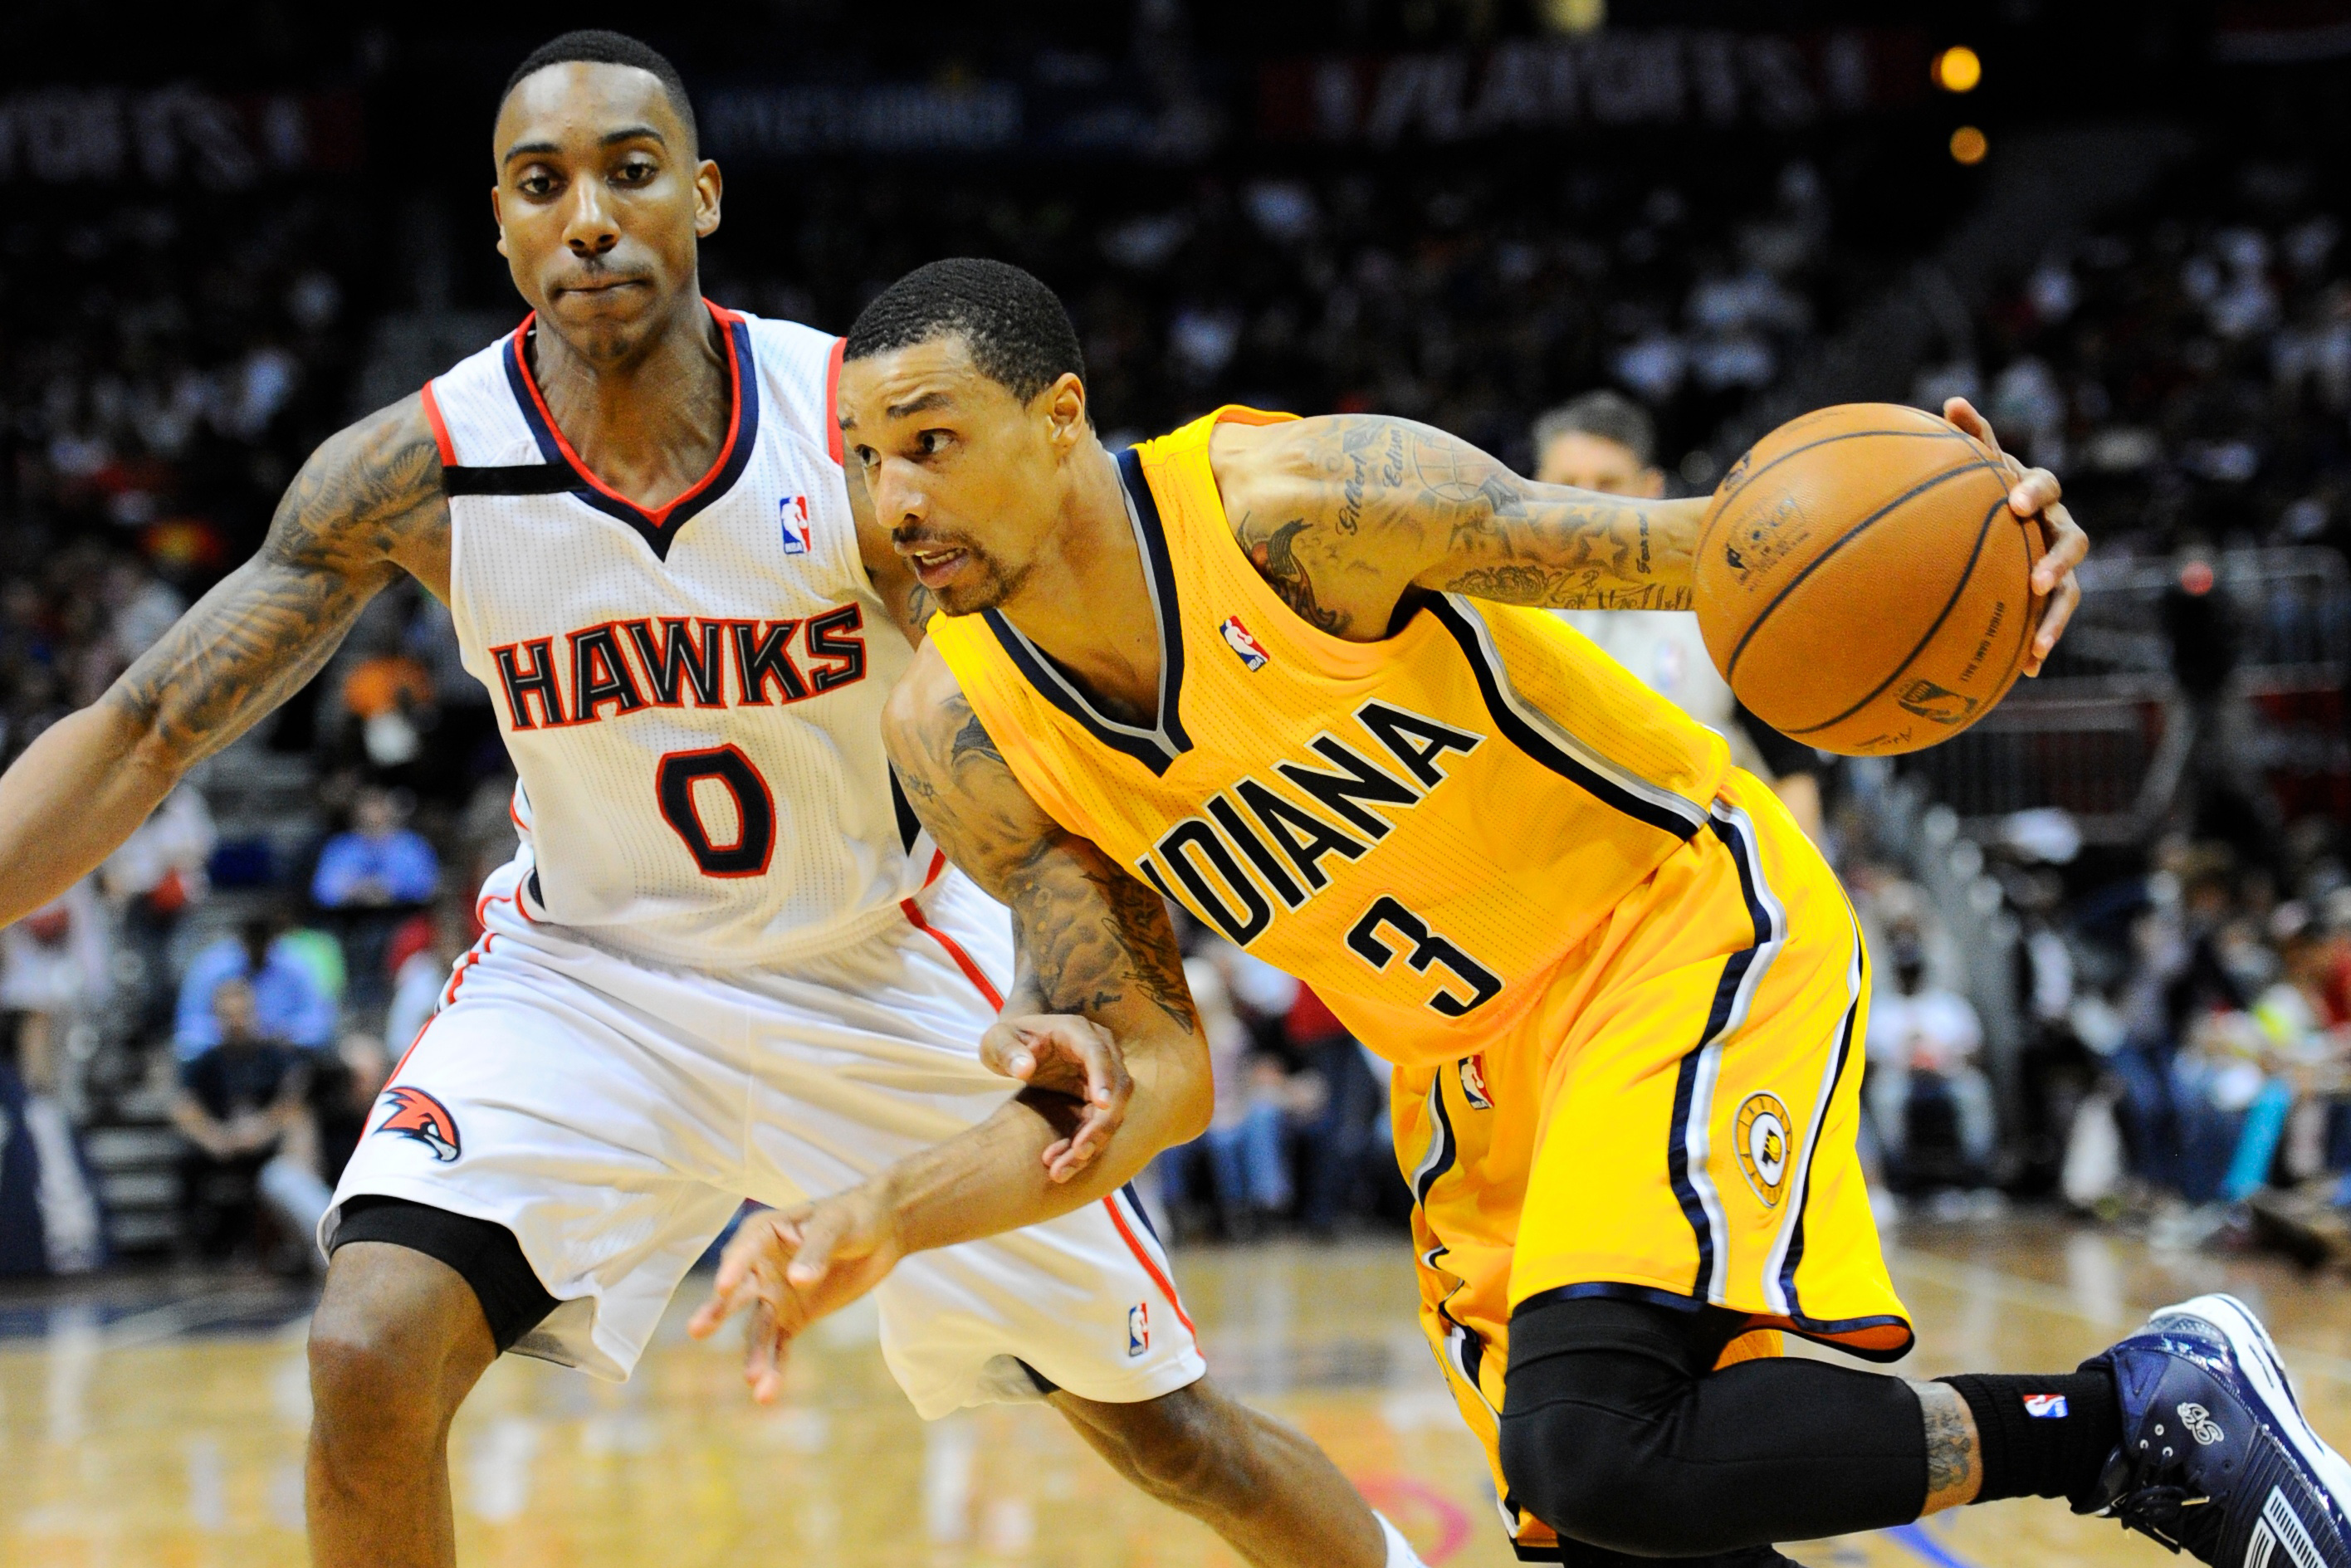 Teague to Pacers, Hill to Jazz, Hawks 12th Overall